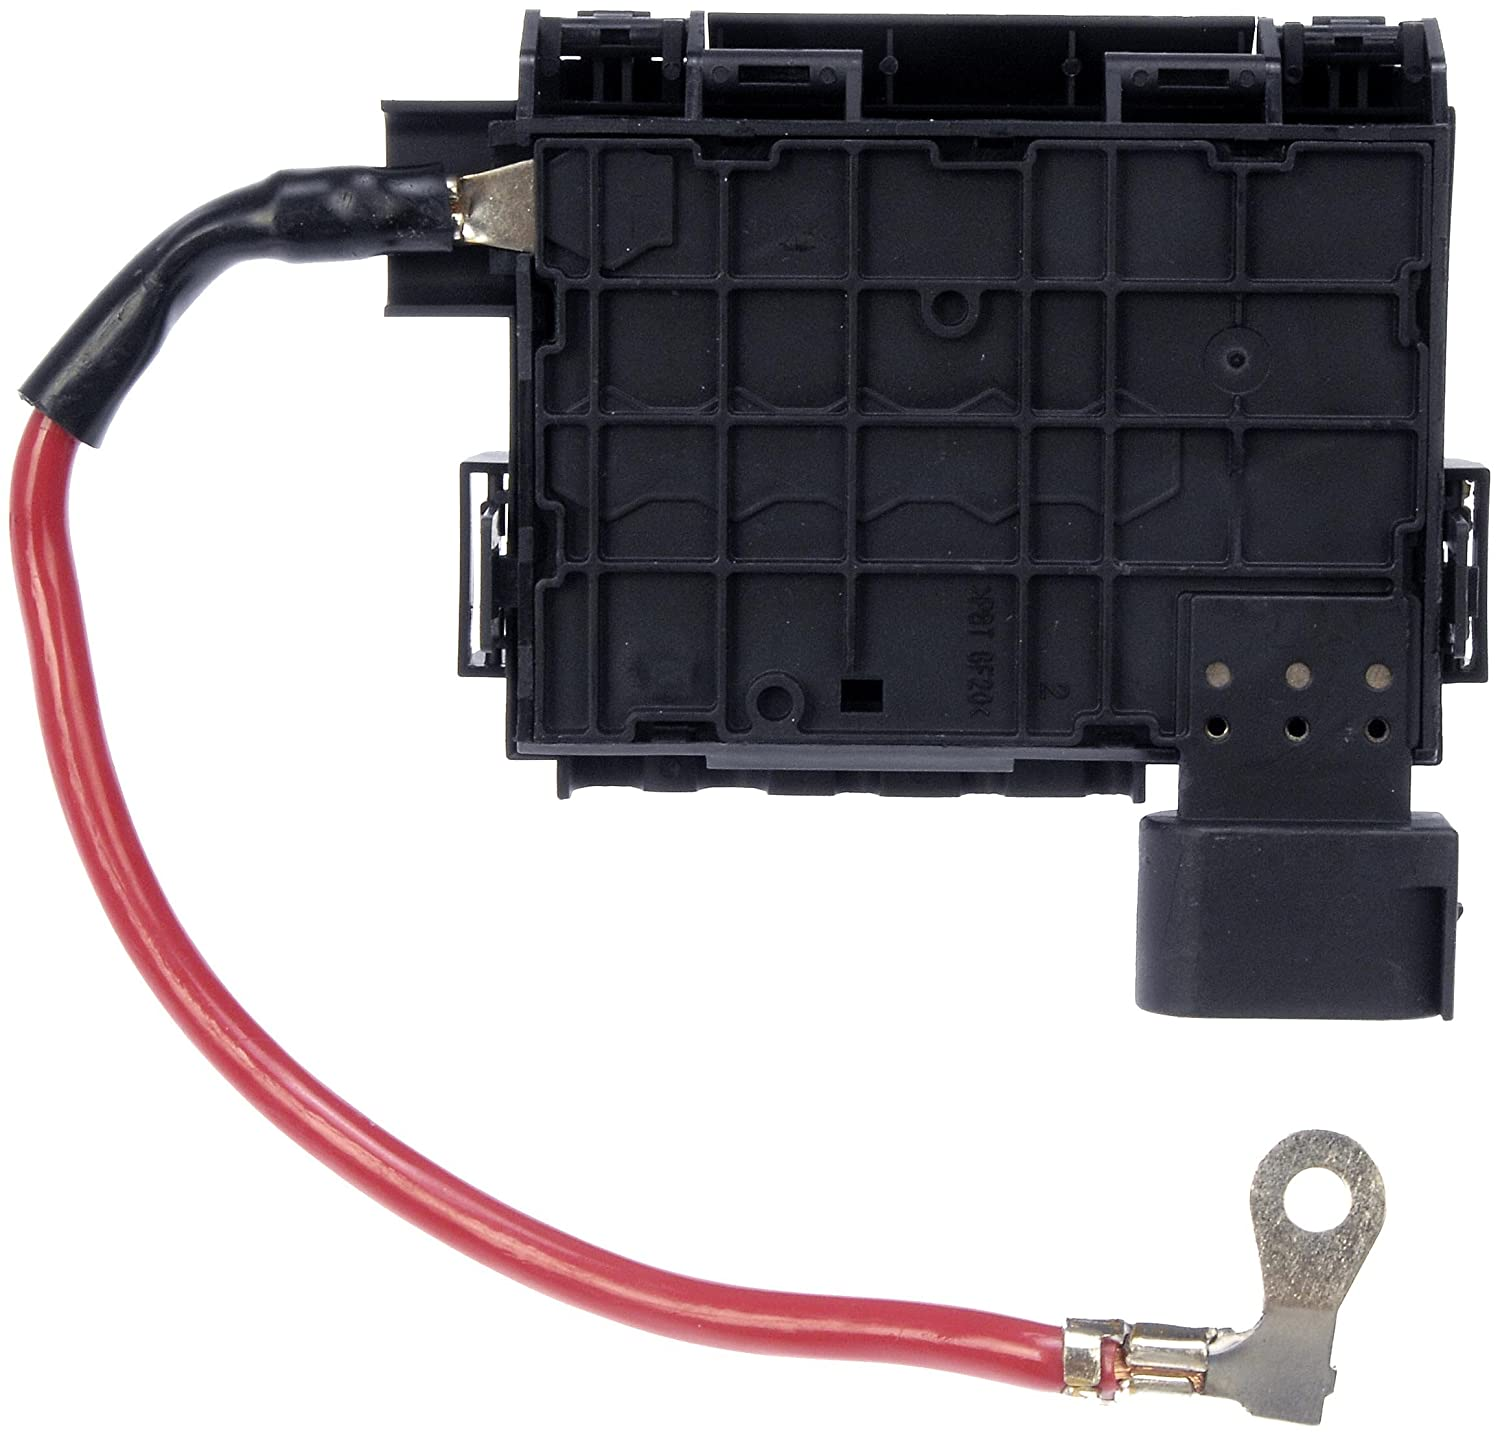 81Q4tLOFmyL._SL1500_ amazon com dorman 924 681 voltage fuse box automotive  at reclaimingppi.co